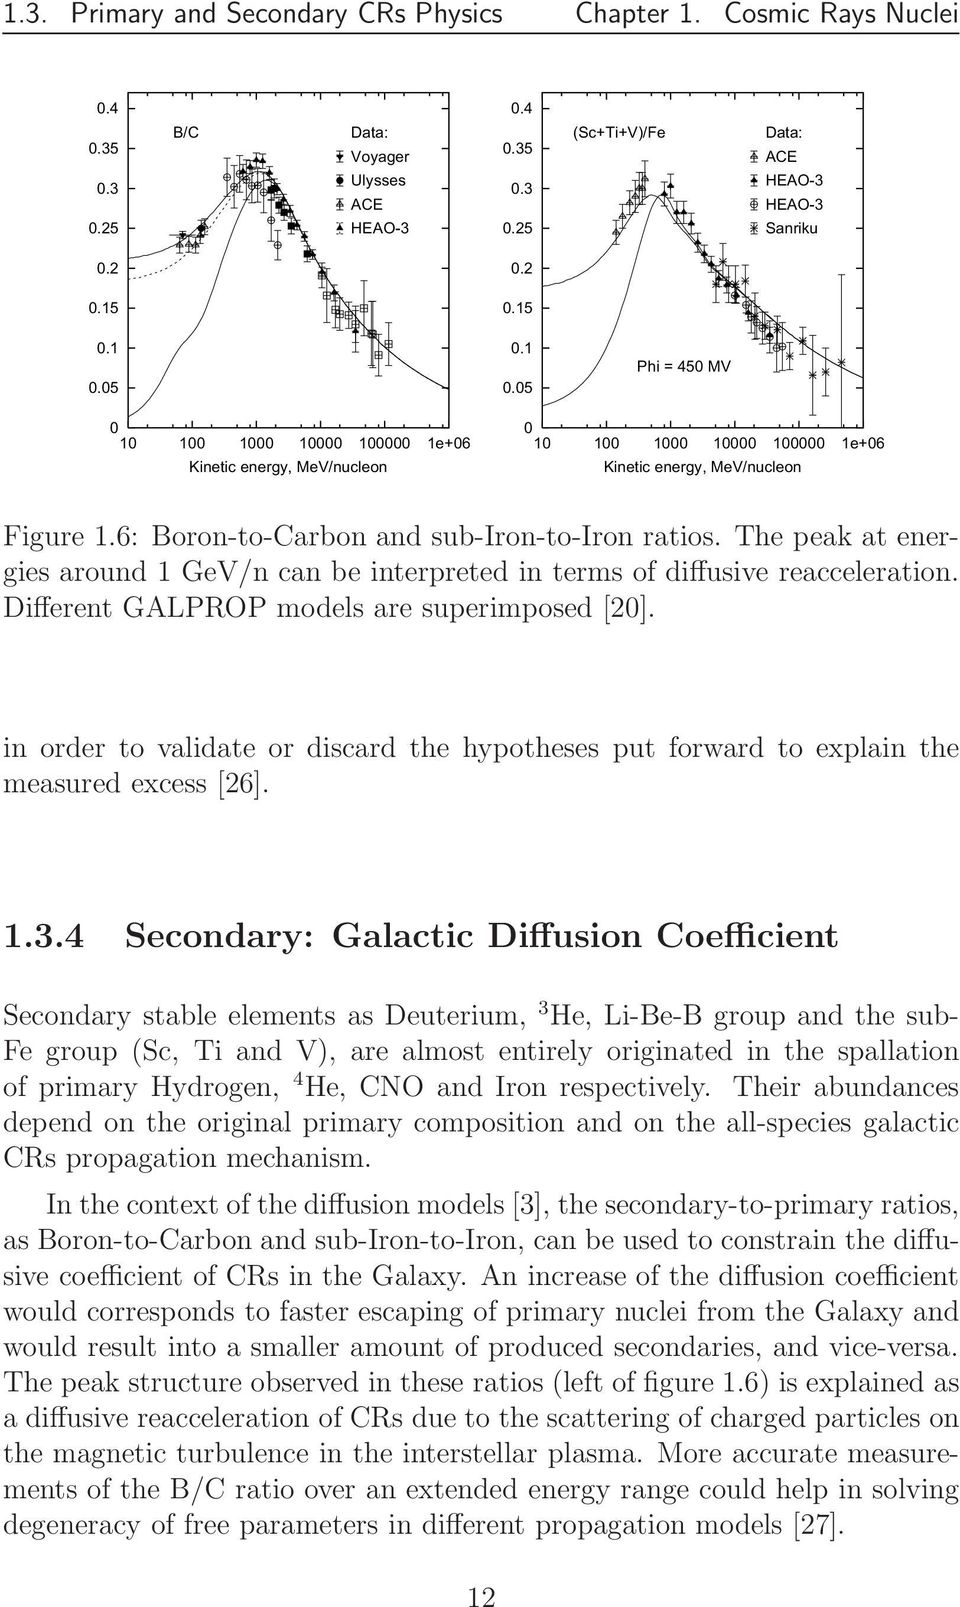 The peak at energies around 1 GeV/n can be interpreted in terms of diffusive reacceleration. Different GALPROP models are superimposed [20].